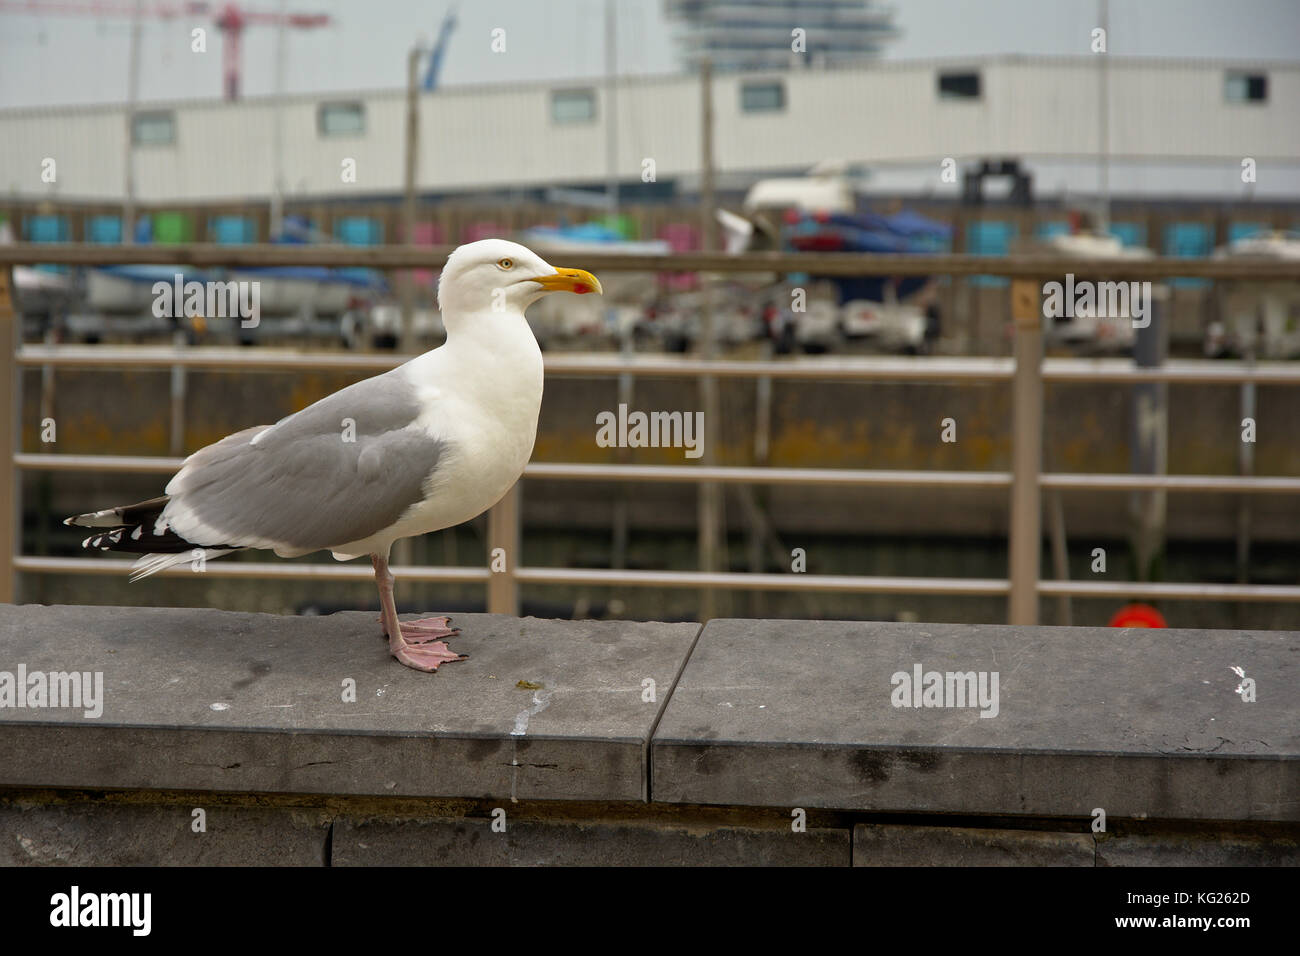 Seagull in urban environment (laridae) - Stock Image